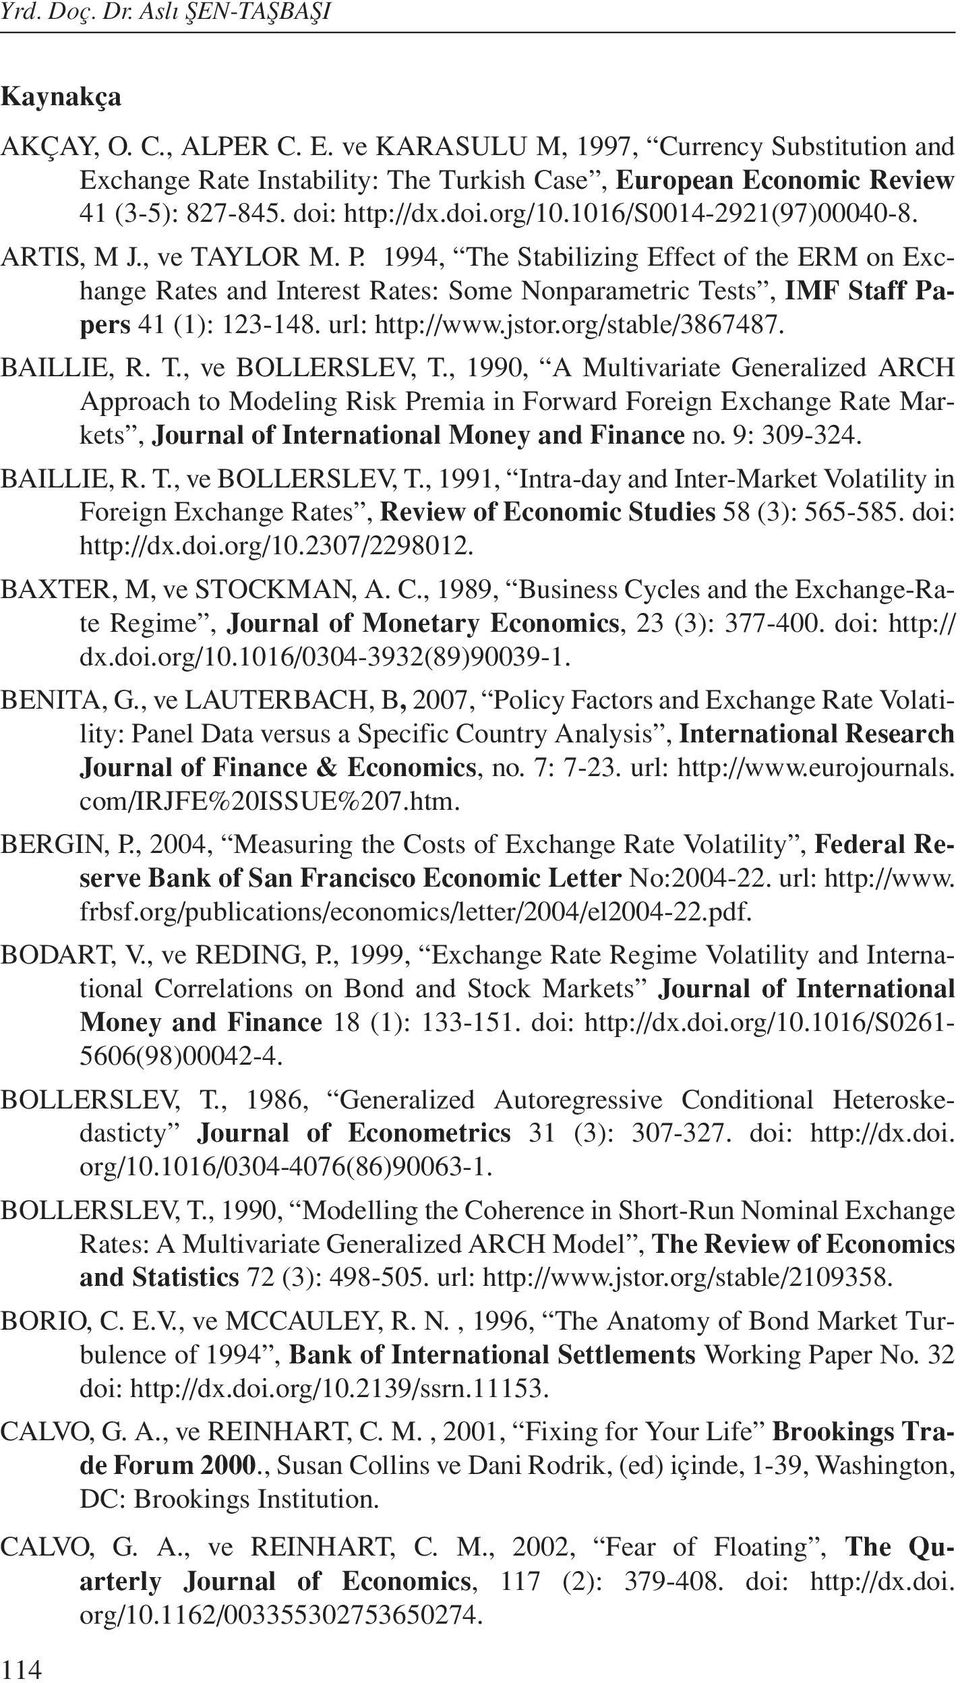 ARTIS, M J., ve TAYLOR M. P. 1994, The Stabilizing Effect of the ERM on Exchange Rates and Interest Rates: Some Nonparametric Tests, IMF Staff Papers 41 (1): 123-148. url: http://www.jstor.